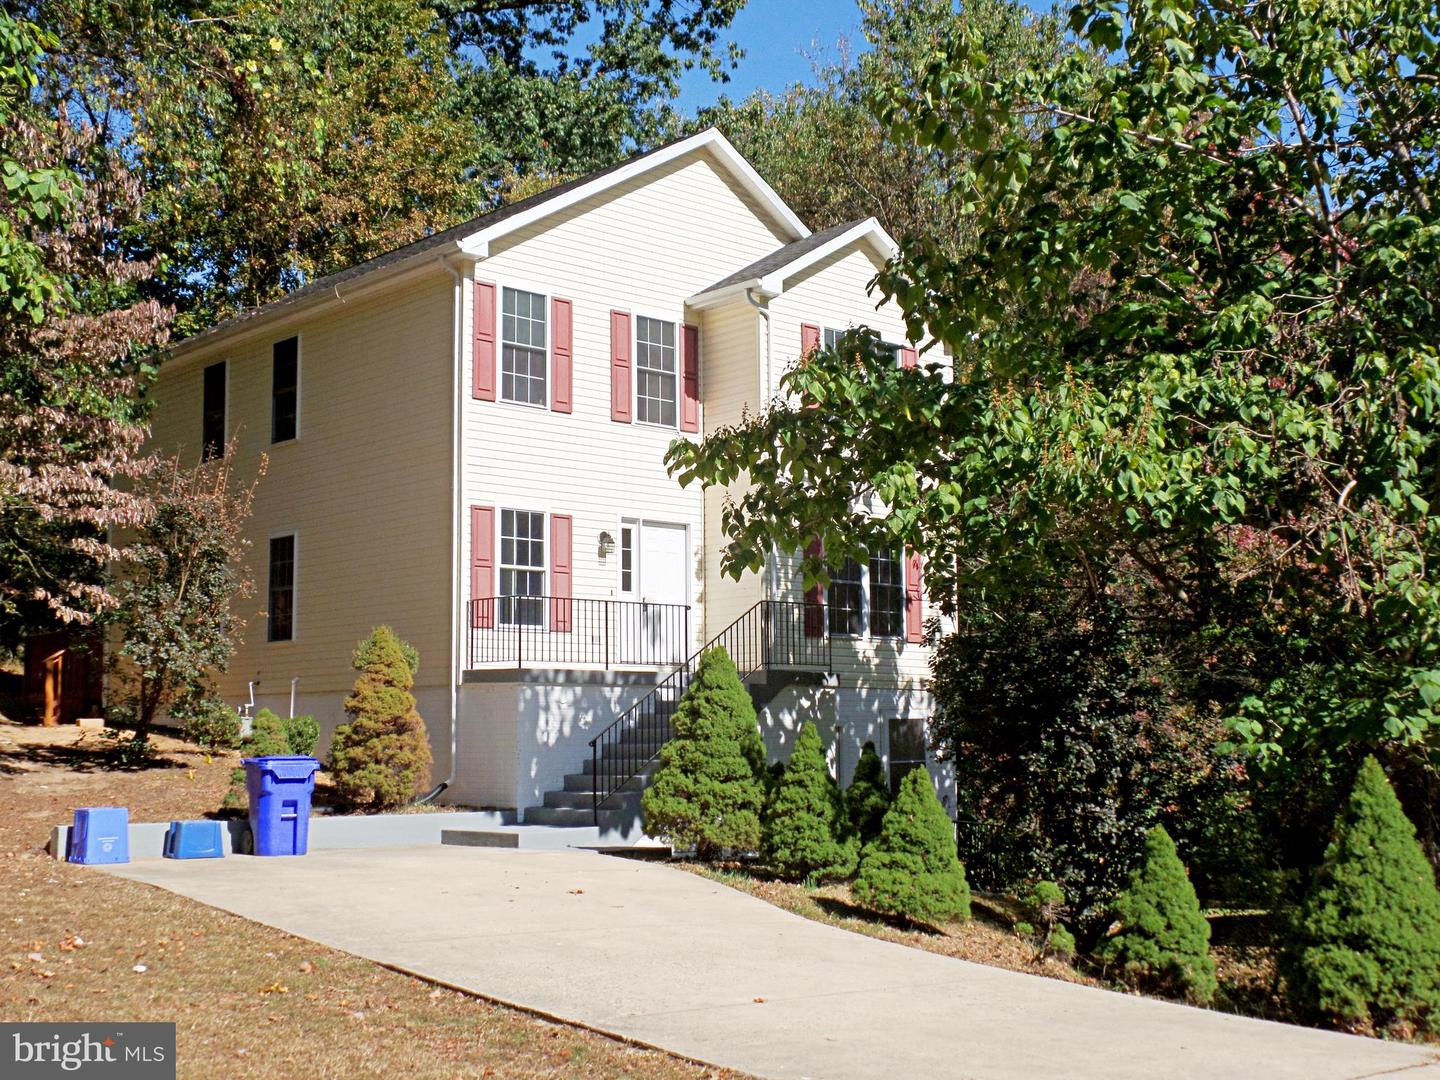 900 ROSEMERE AVENUE, SILVER SPRING, Maryland